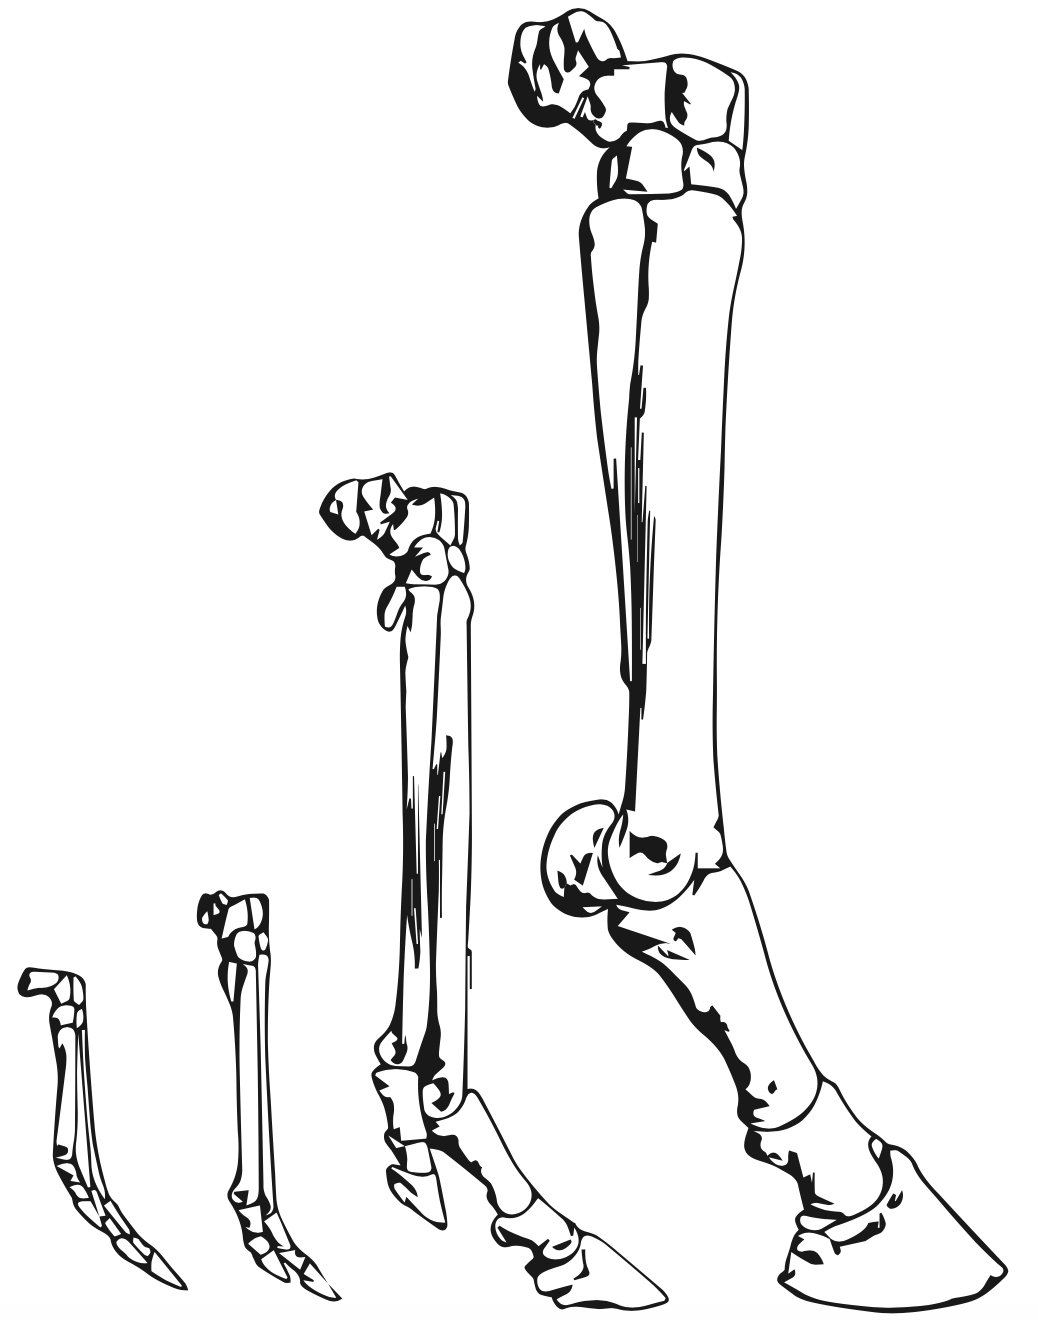 why horses evolved to have only one toe inverse I-Beam Structure